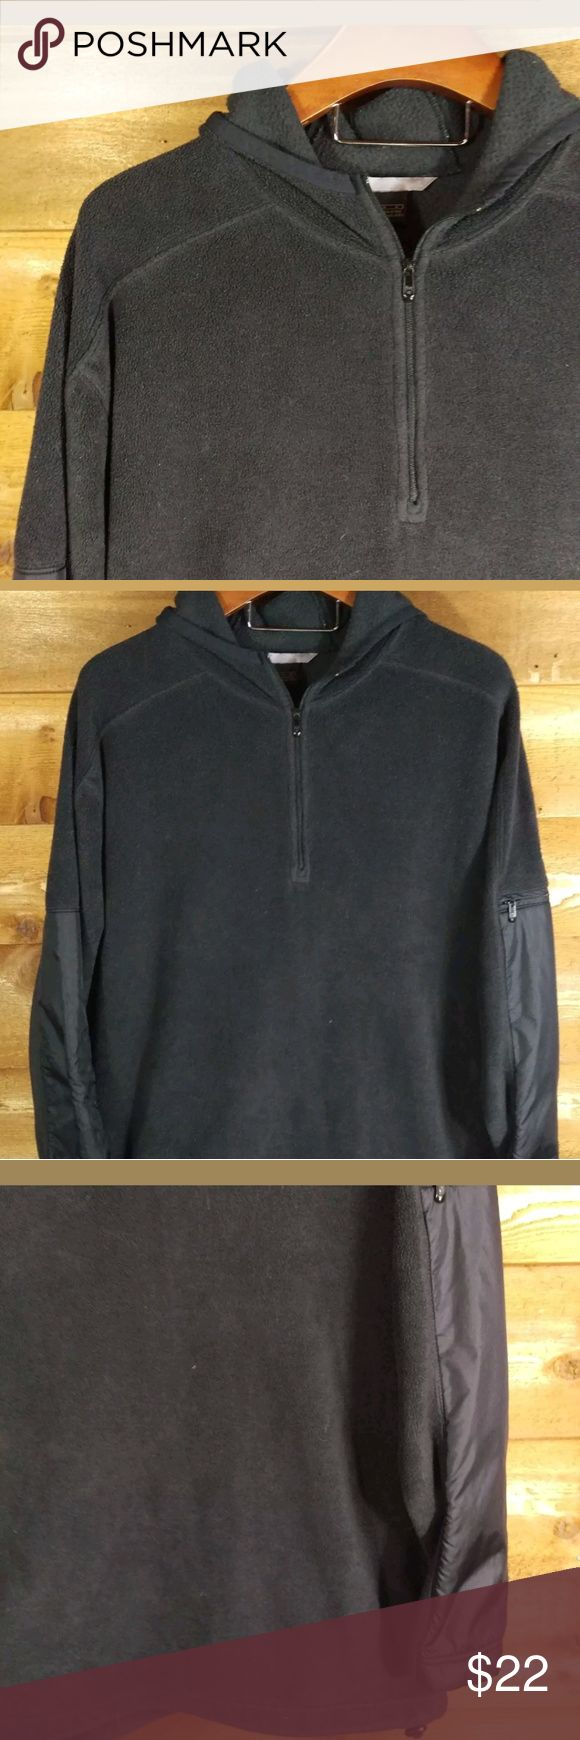 "Nike Fleece Hoodie Generous Fit Mens Sz. L Nike Pullover Black Hoodie with a comfy loose fit. Excellent condition. Smoke free.  2 front zipper pockets, zipper pocket on sleeve   100% Polyester   Size L  Chest 27"" across Sleeve 32""  Length 31""  ST2 Nike Shirts Sweatshirts & Hoodies"